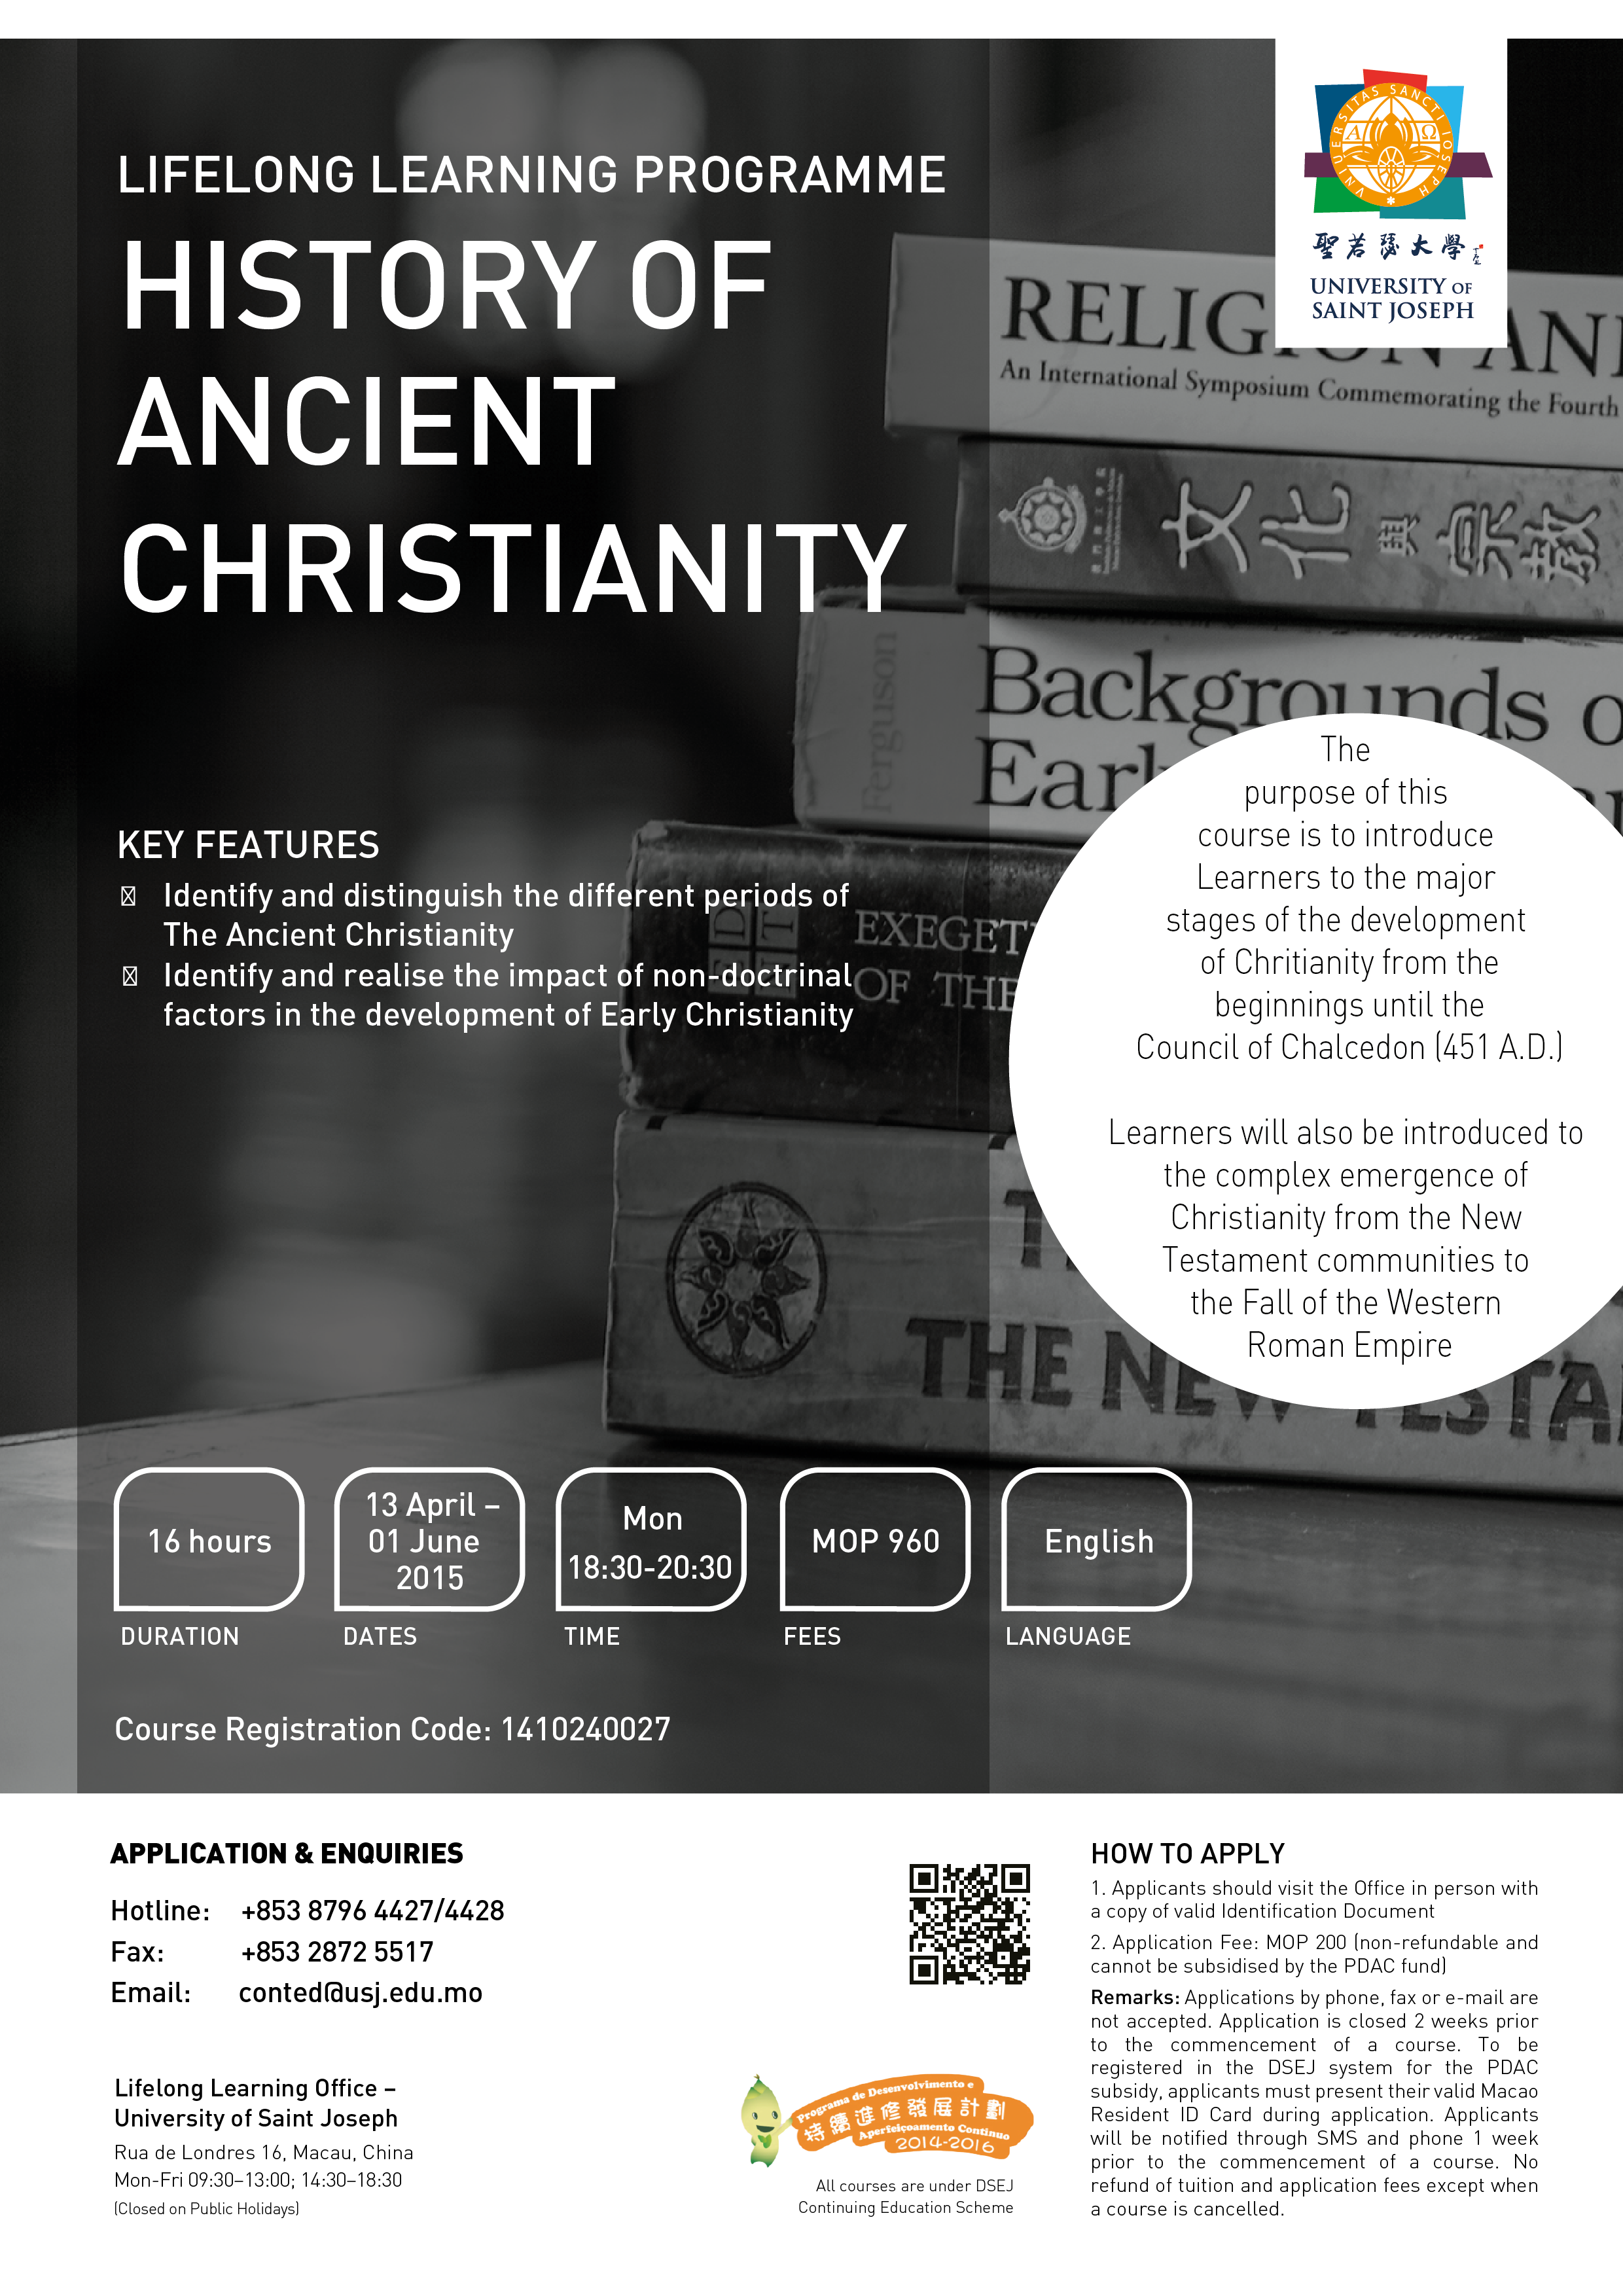 history of ancient christianity-01